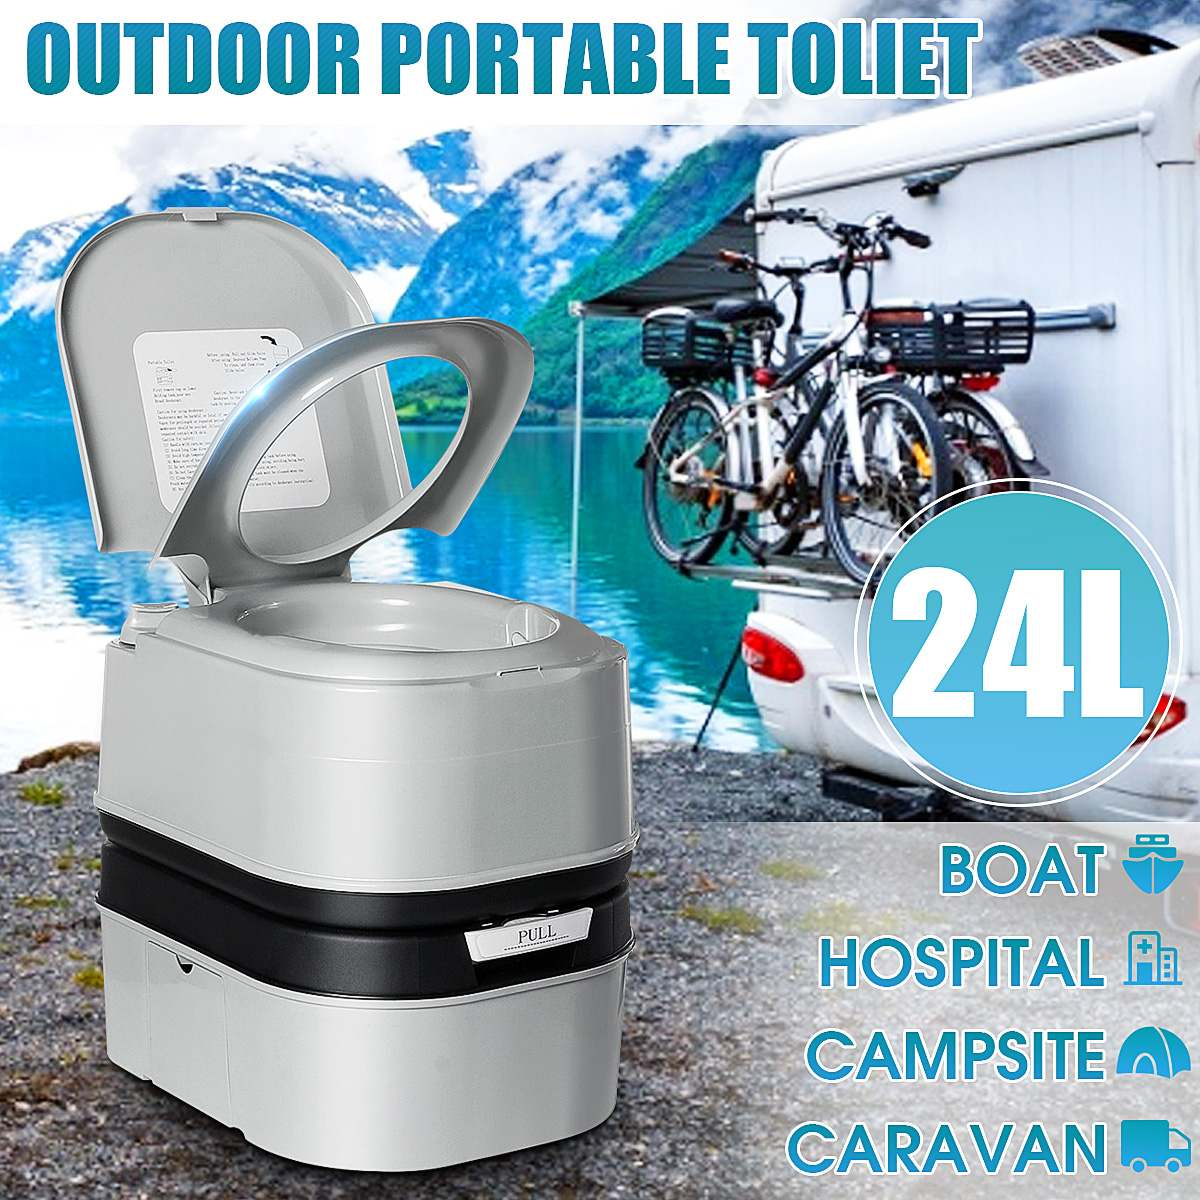 24L Portable Toilet Camping Potty Loo Outdoor Camping Caravan RV Boat Picnic Fishing Festival Accessories Commode Movable Toilet|Bathroom Chairs & Stools| |  - title=